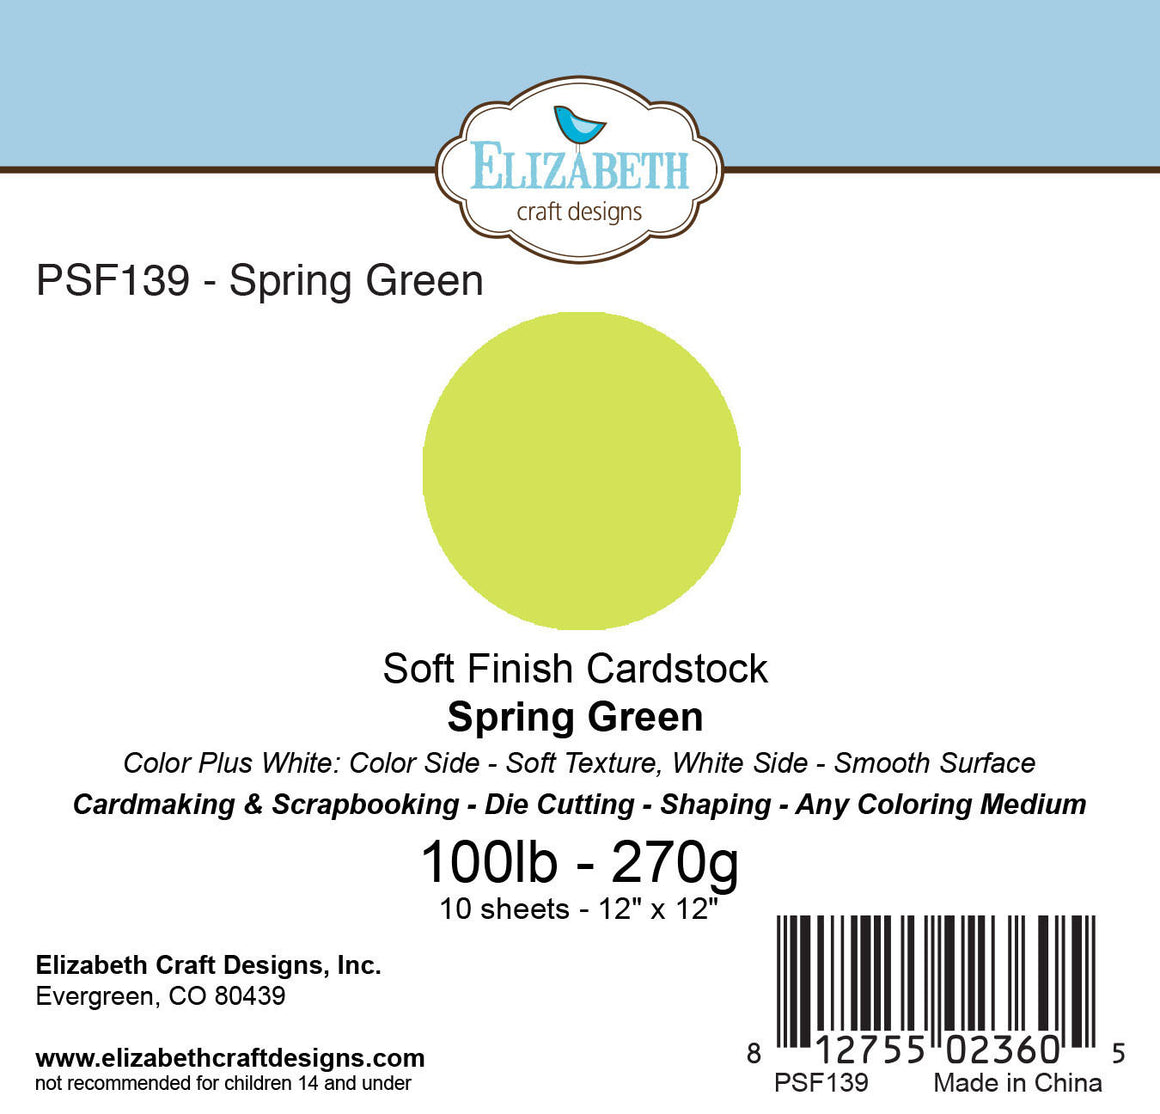 Soft Finish Cardstock, Spring Green